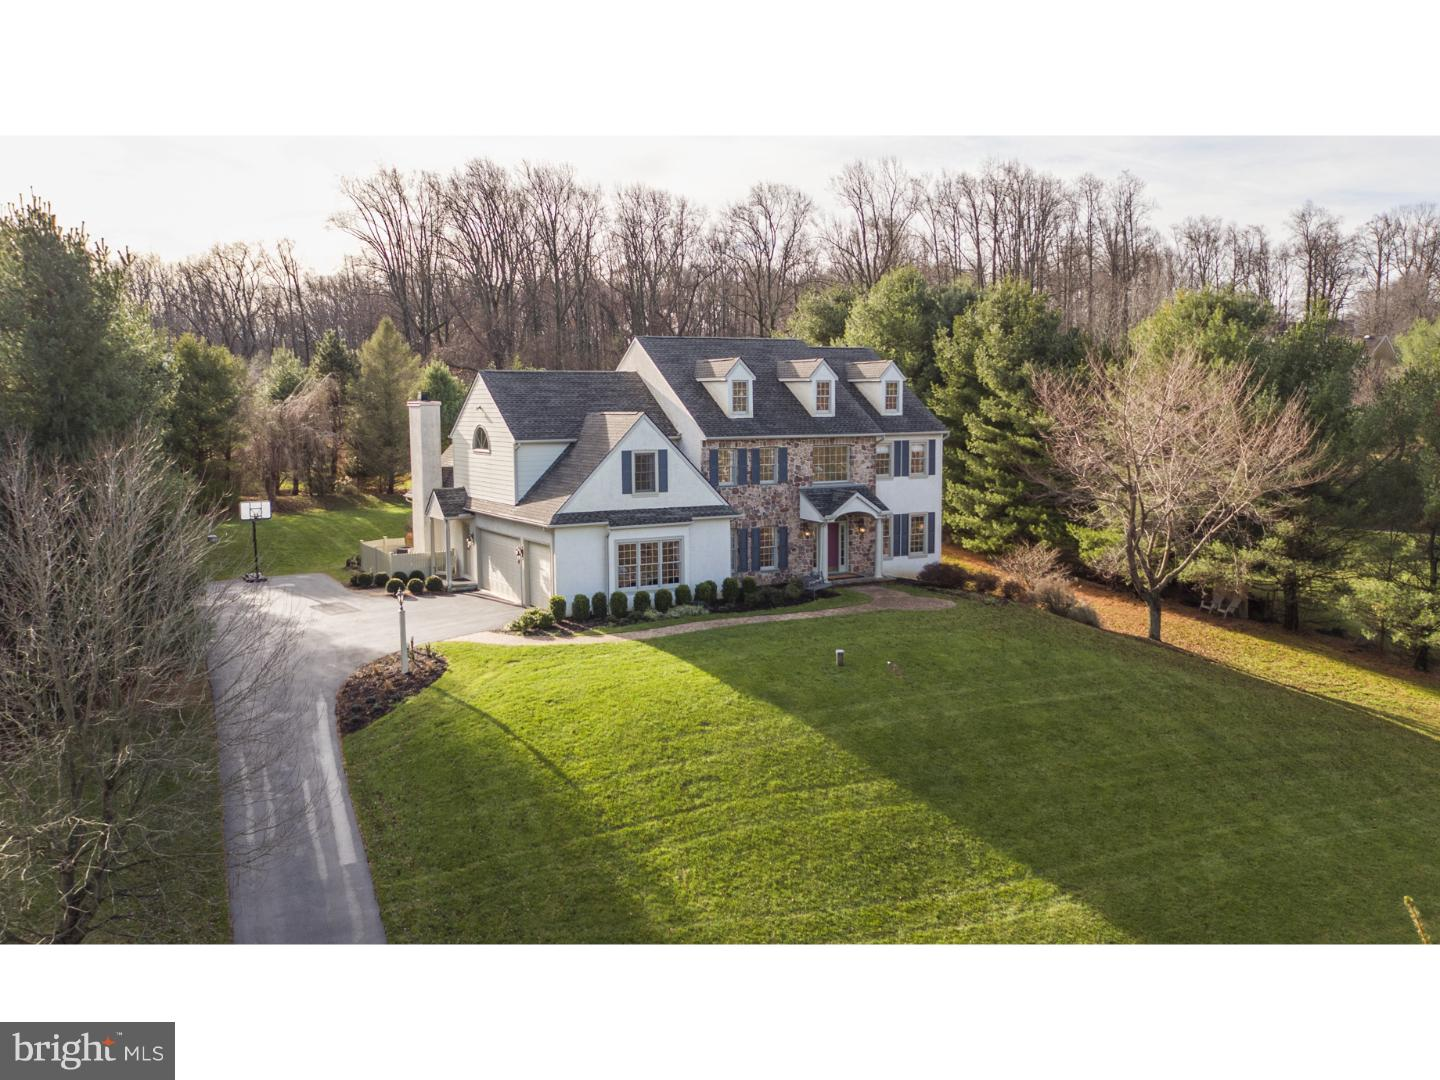 1150 YELLOW SPRINGS ROAD, CHESTER SPRINGS, PA 19425